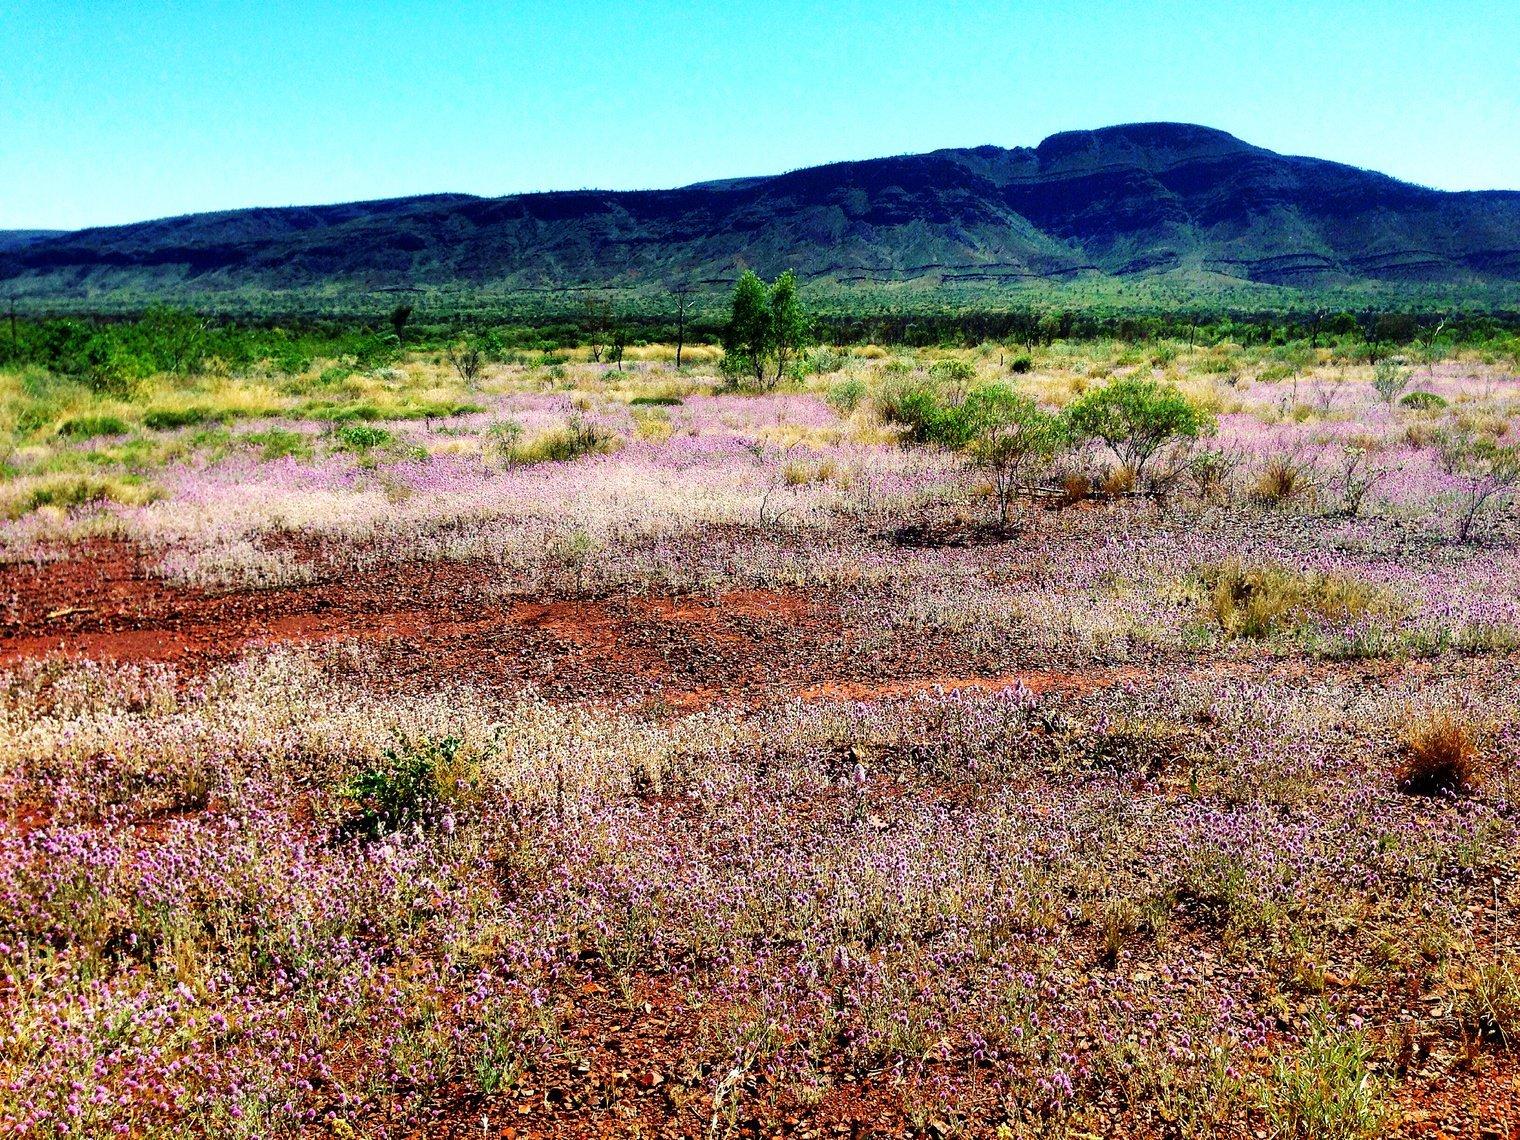 Wildflowers in Pilbara, Western Australia